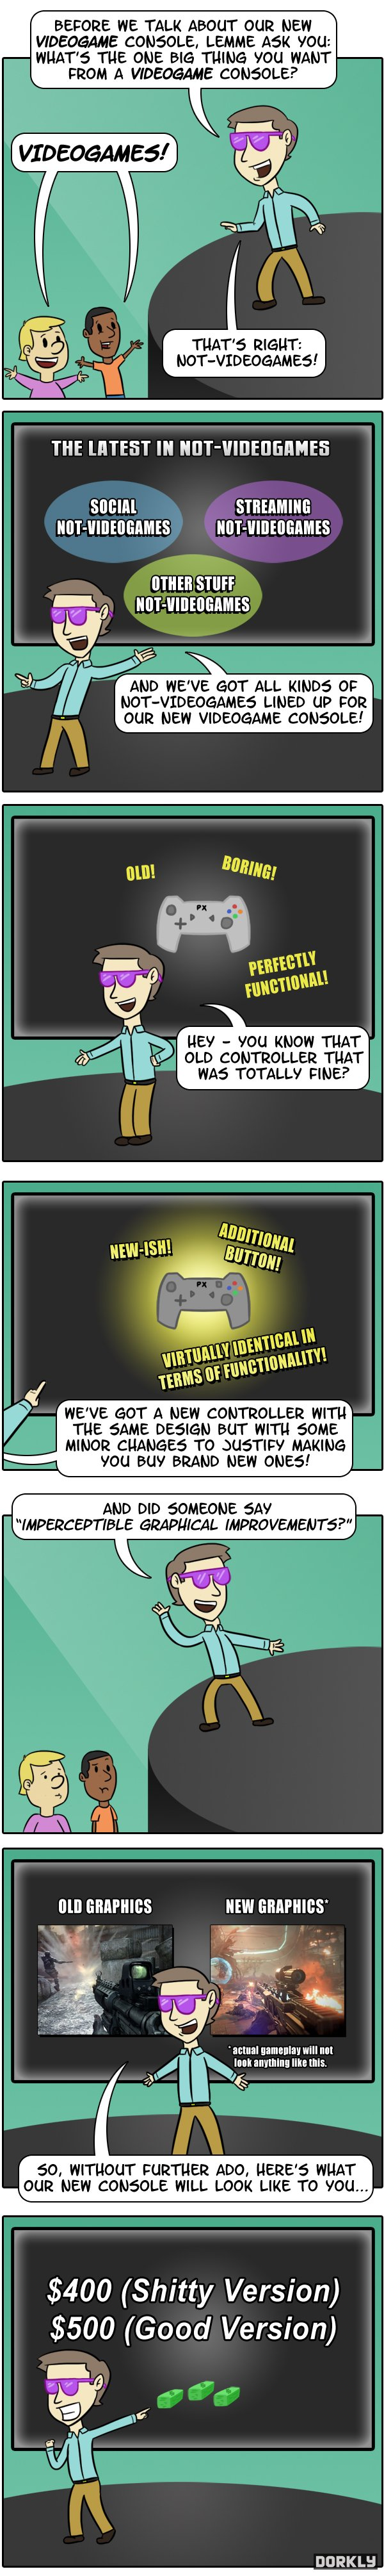 new-game-console-reveals-were-honest